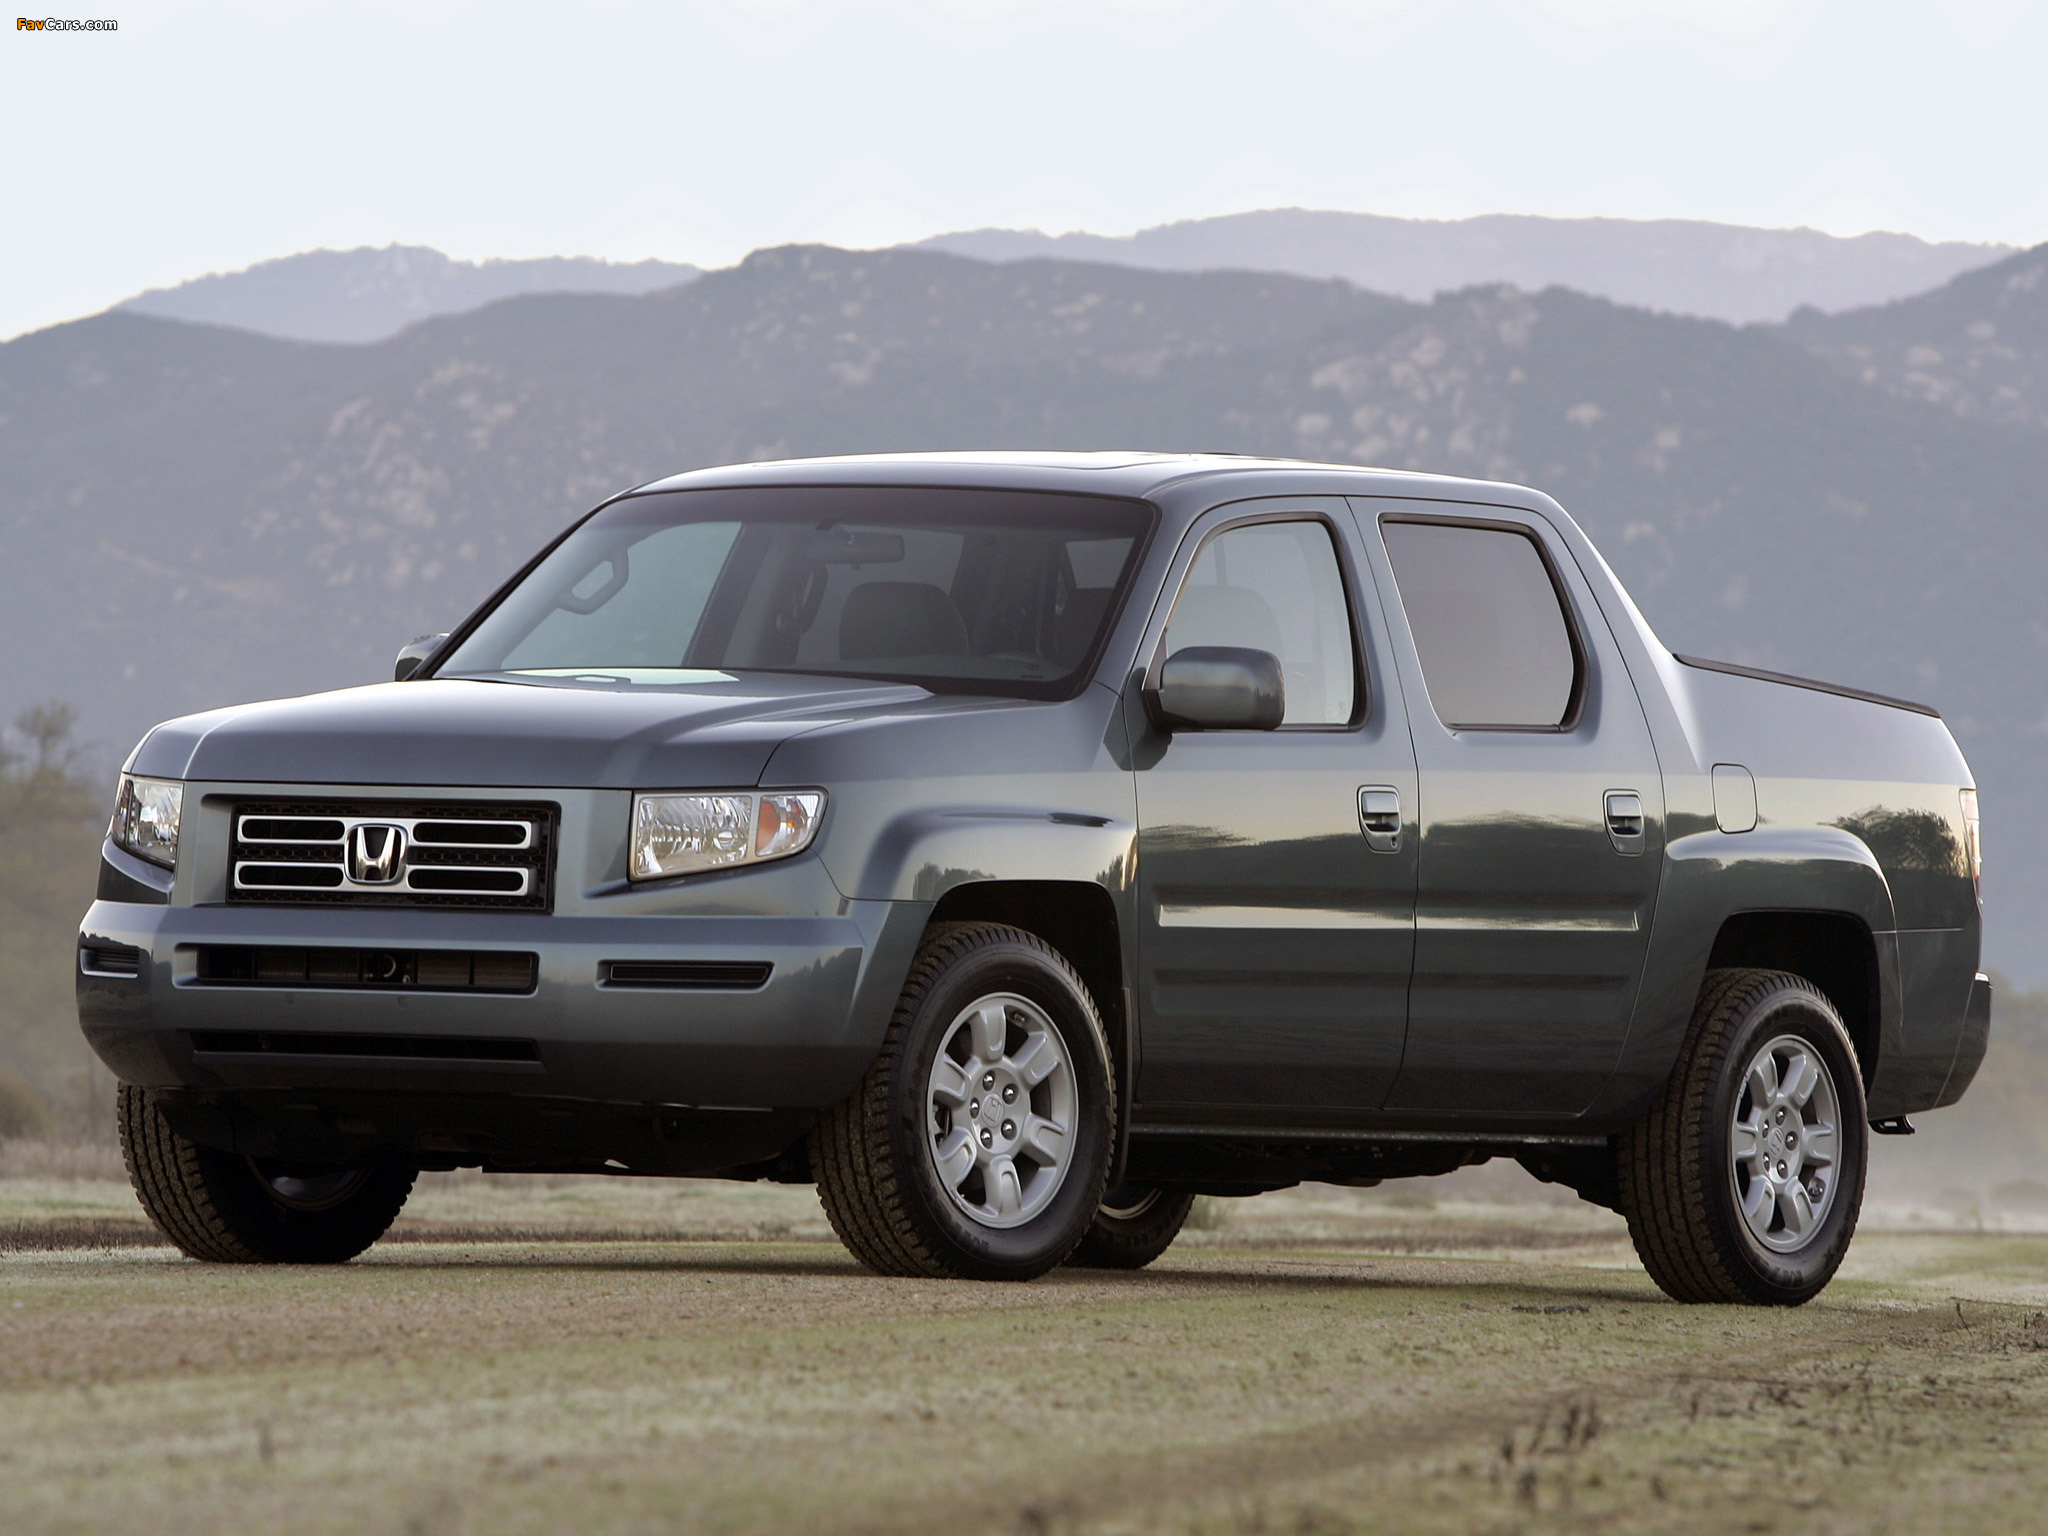 Image Result For Honda Ridgeline Features